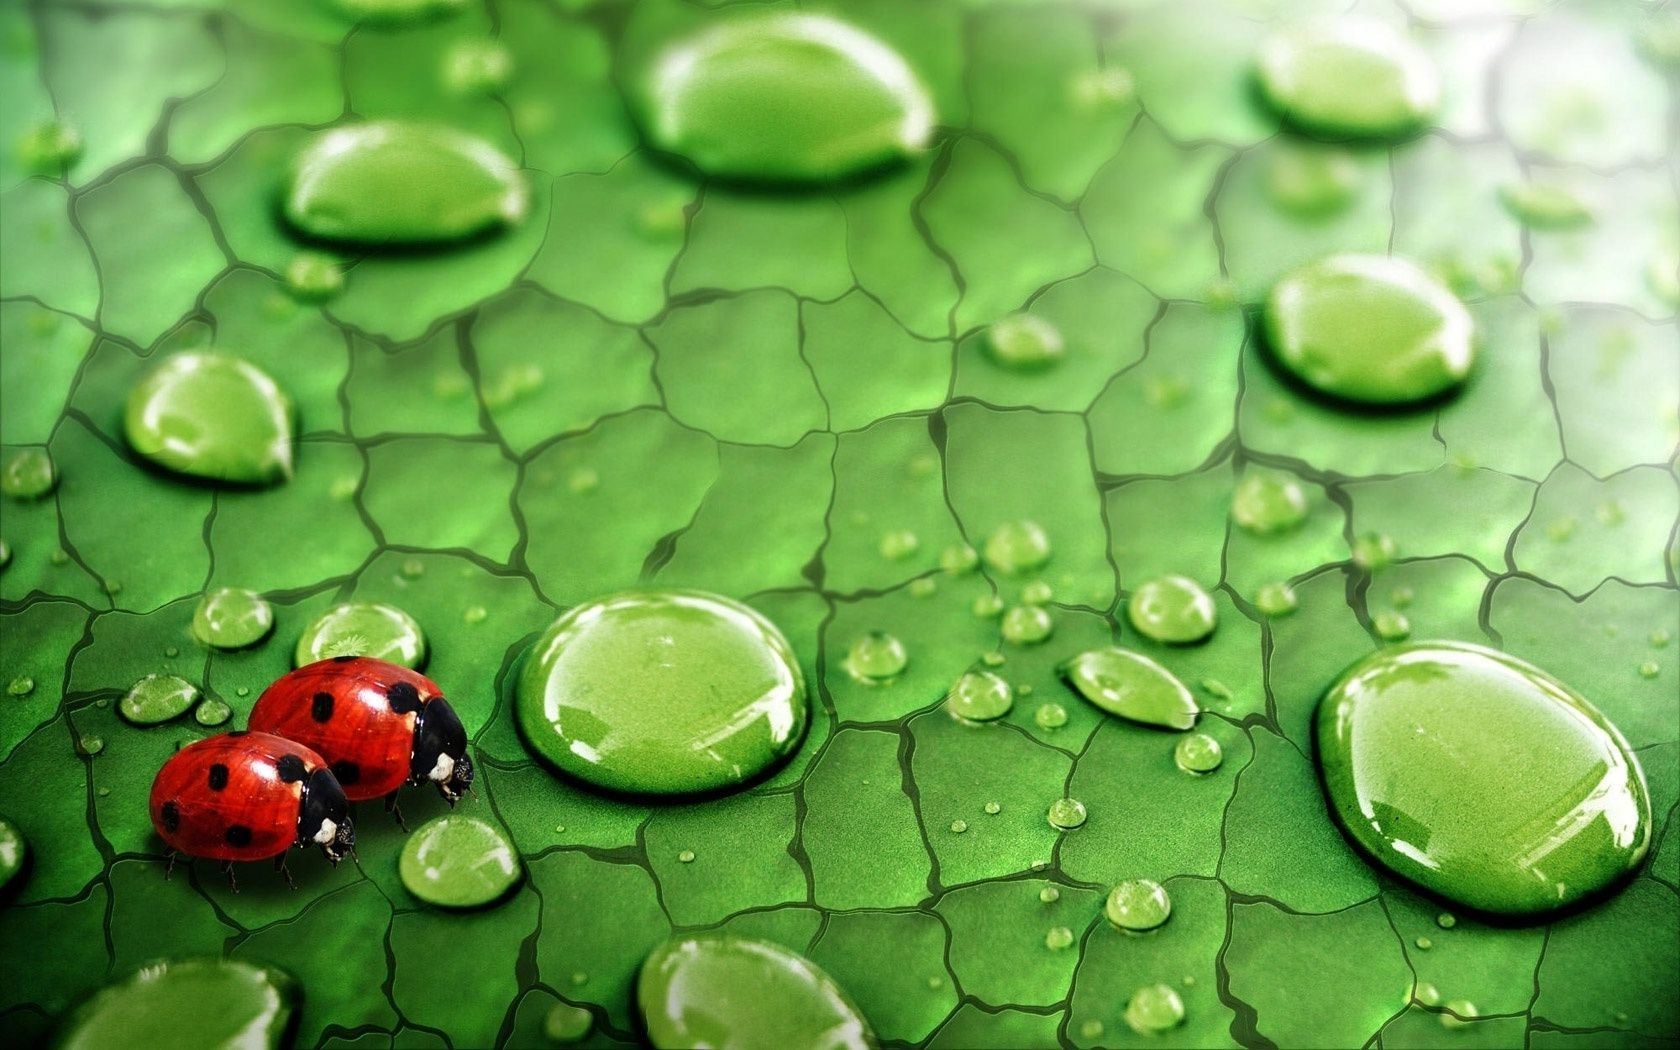 Ladybugs on a leaf with drops